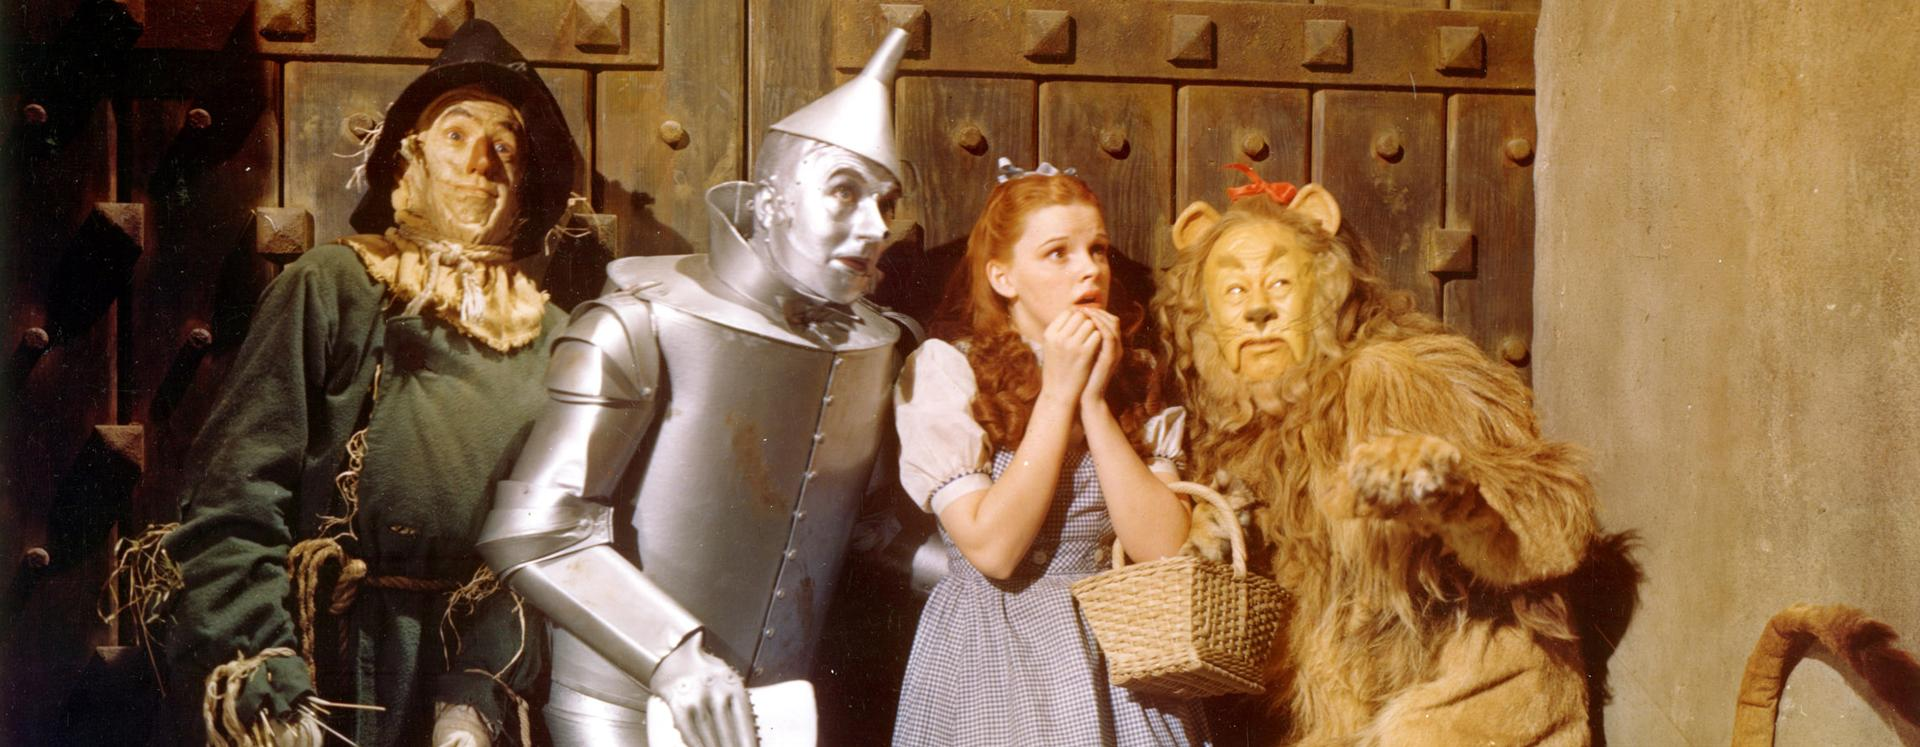 The Wizard Of Oz 1939 Overview Tcmcom